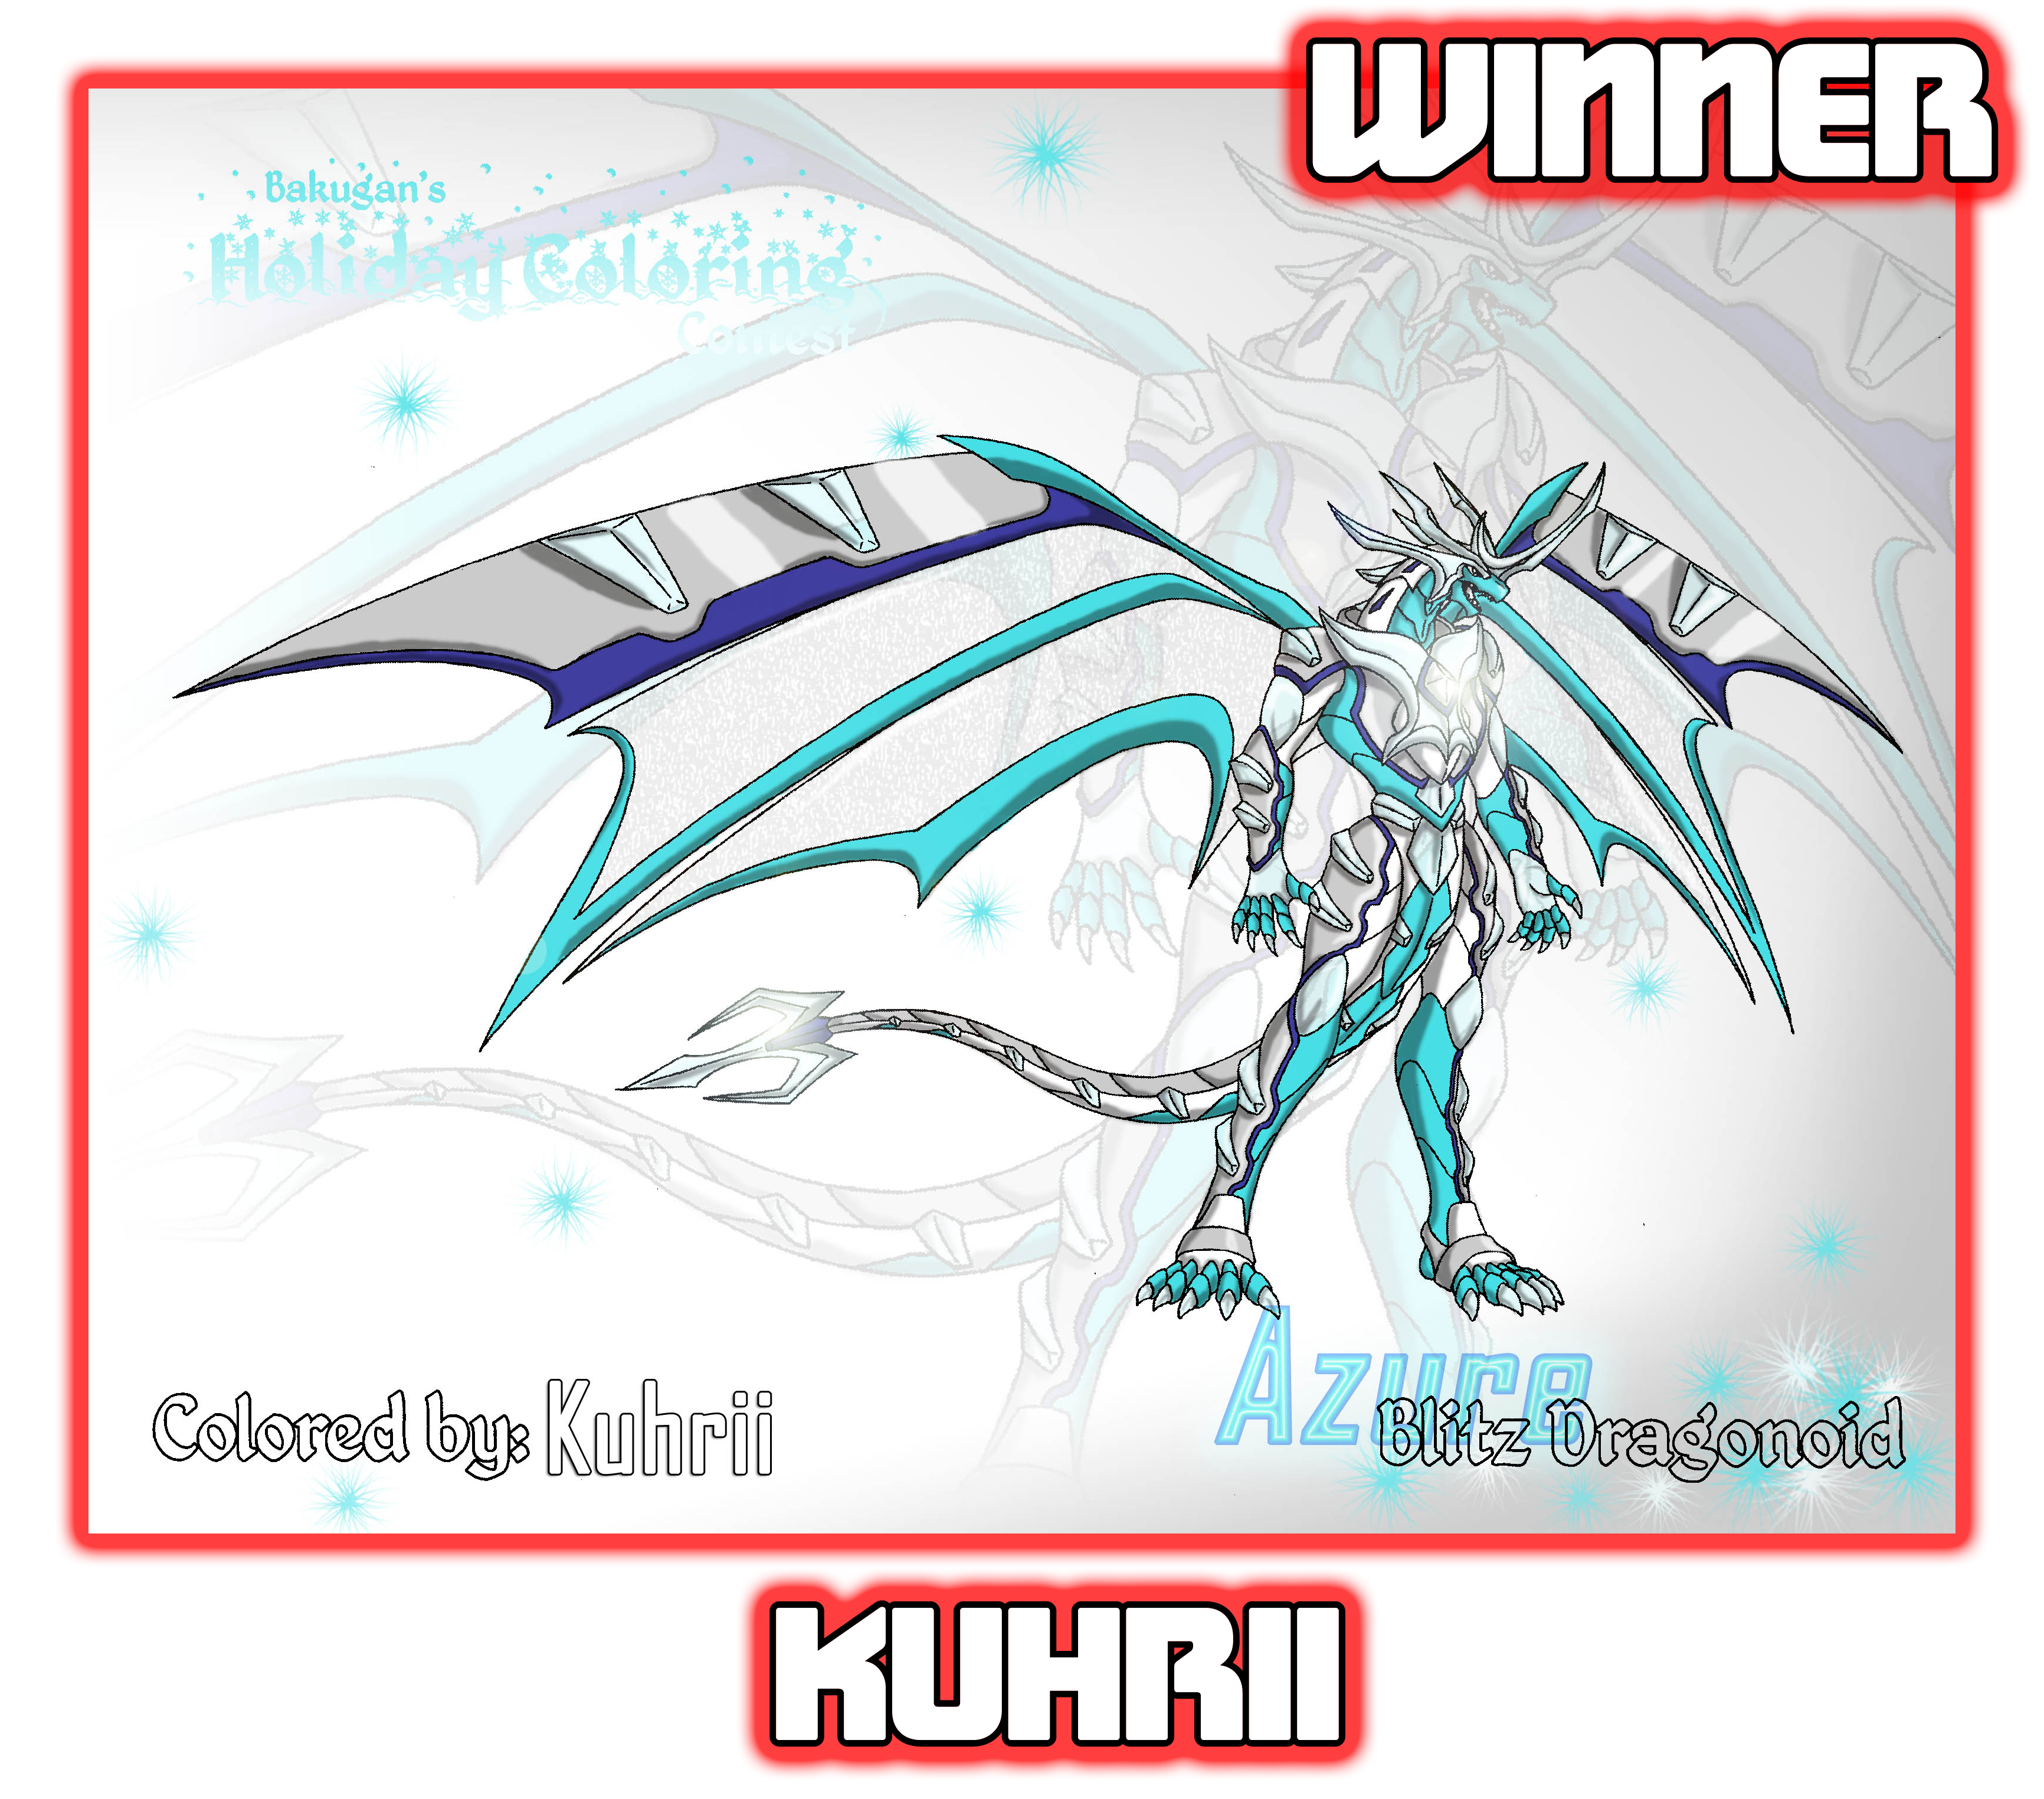 KuhriiHoliday Winners Of the Bakugan Holiday Coloring Contest!